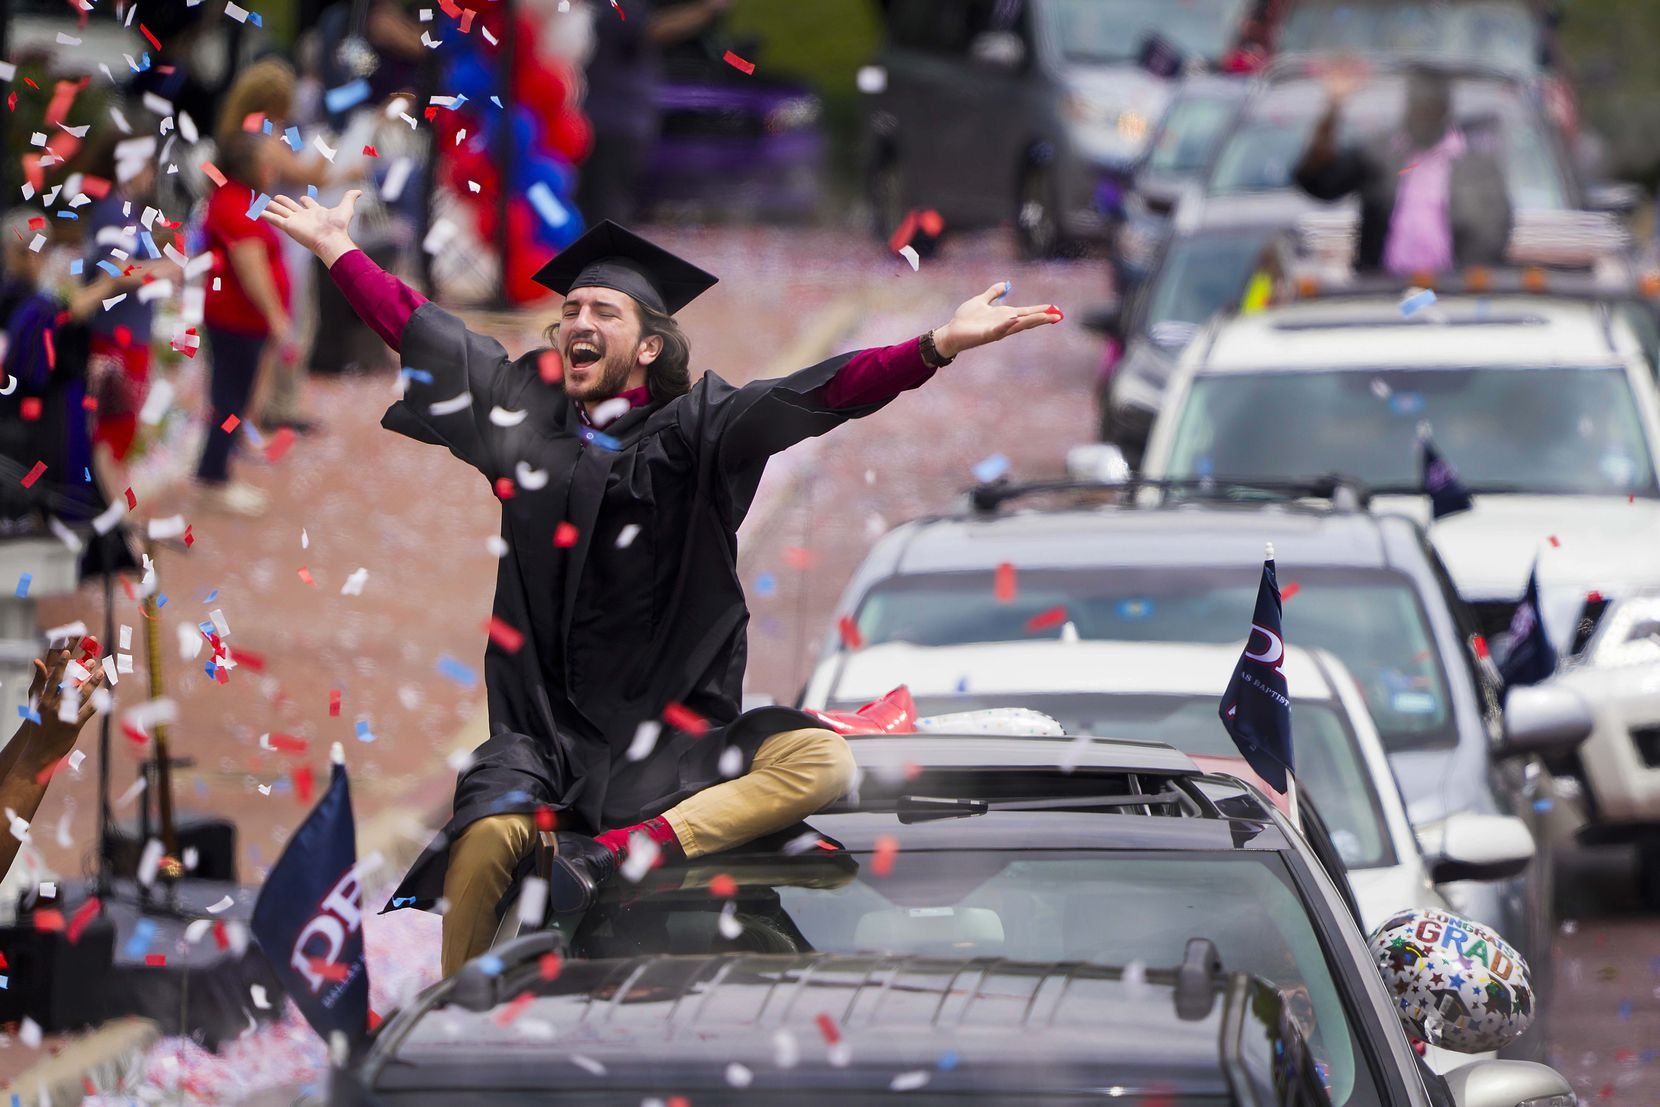 Graduate William Santini celebrated as confetti fell during a commencement car parade at Dallas Baptist University on May 15, 2020. DBU graduates moved by car through the campus and had their names called as they passed Pilgrim Chapel before proceeding onward to collect diplomas. Approximately 350 graduates passed through the campus in a parade of approximately 600 cars.